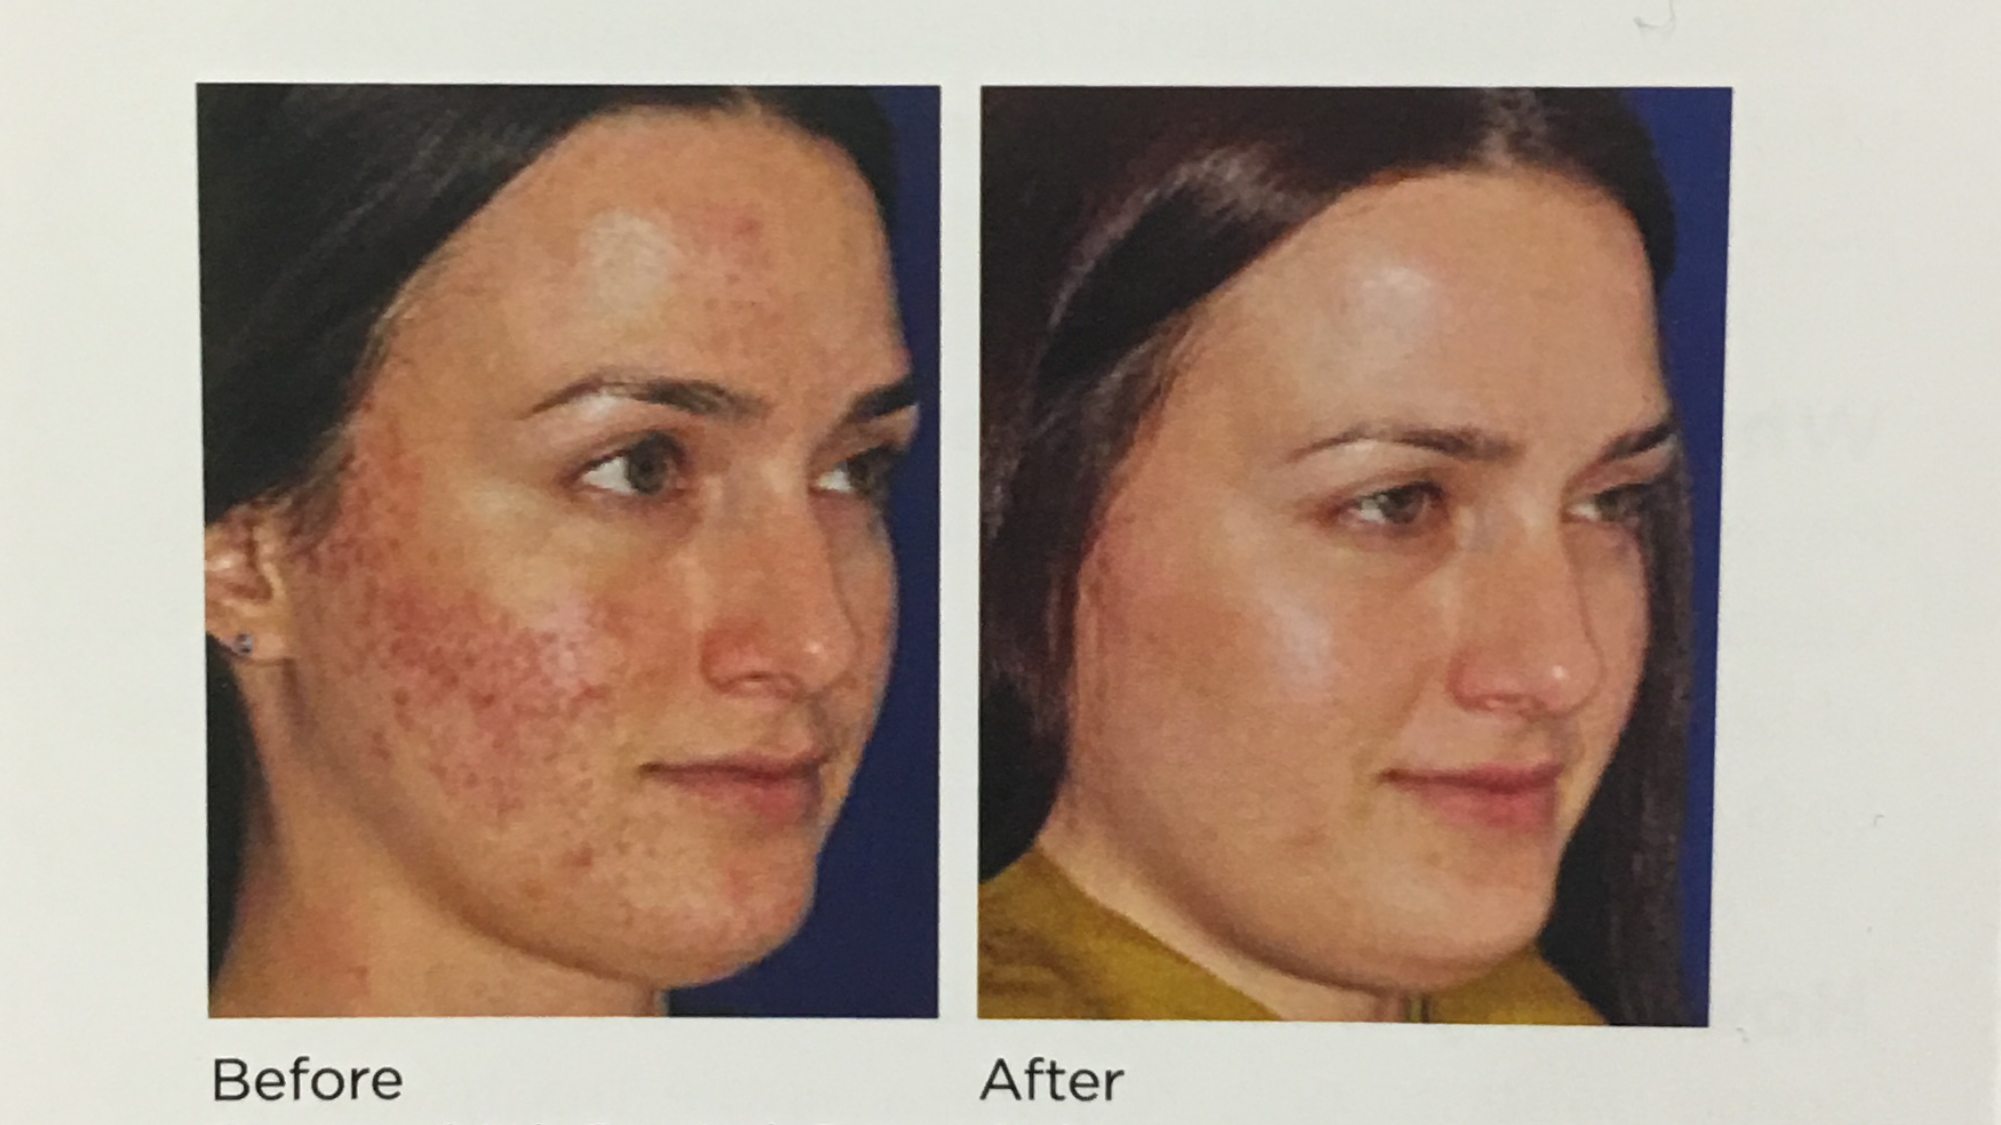 THE MIRACLE OF MICRONEEDLING